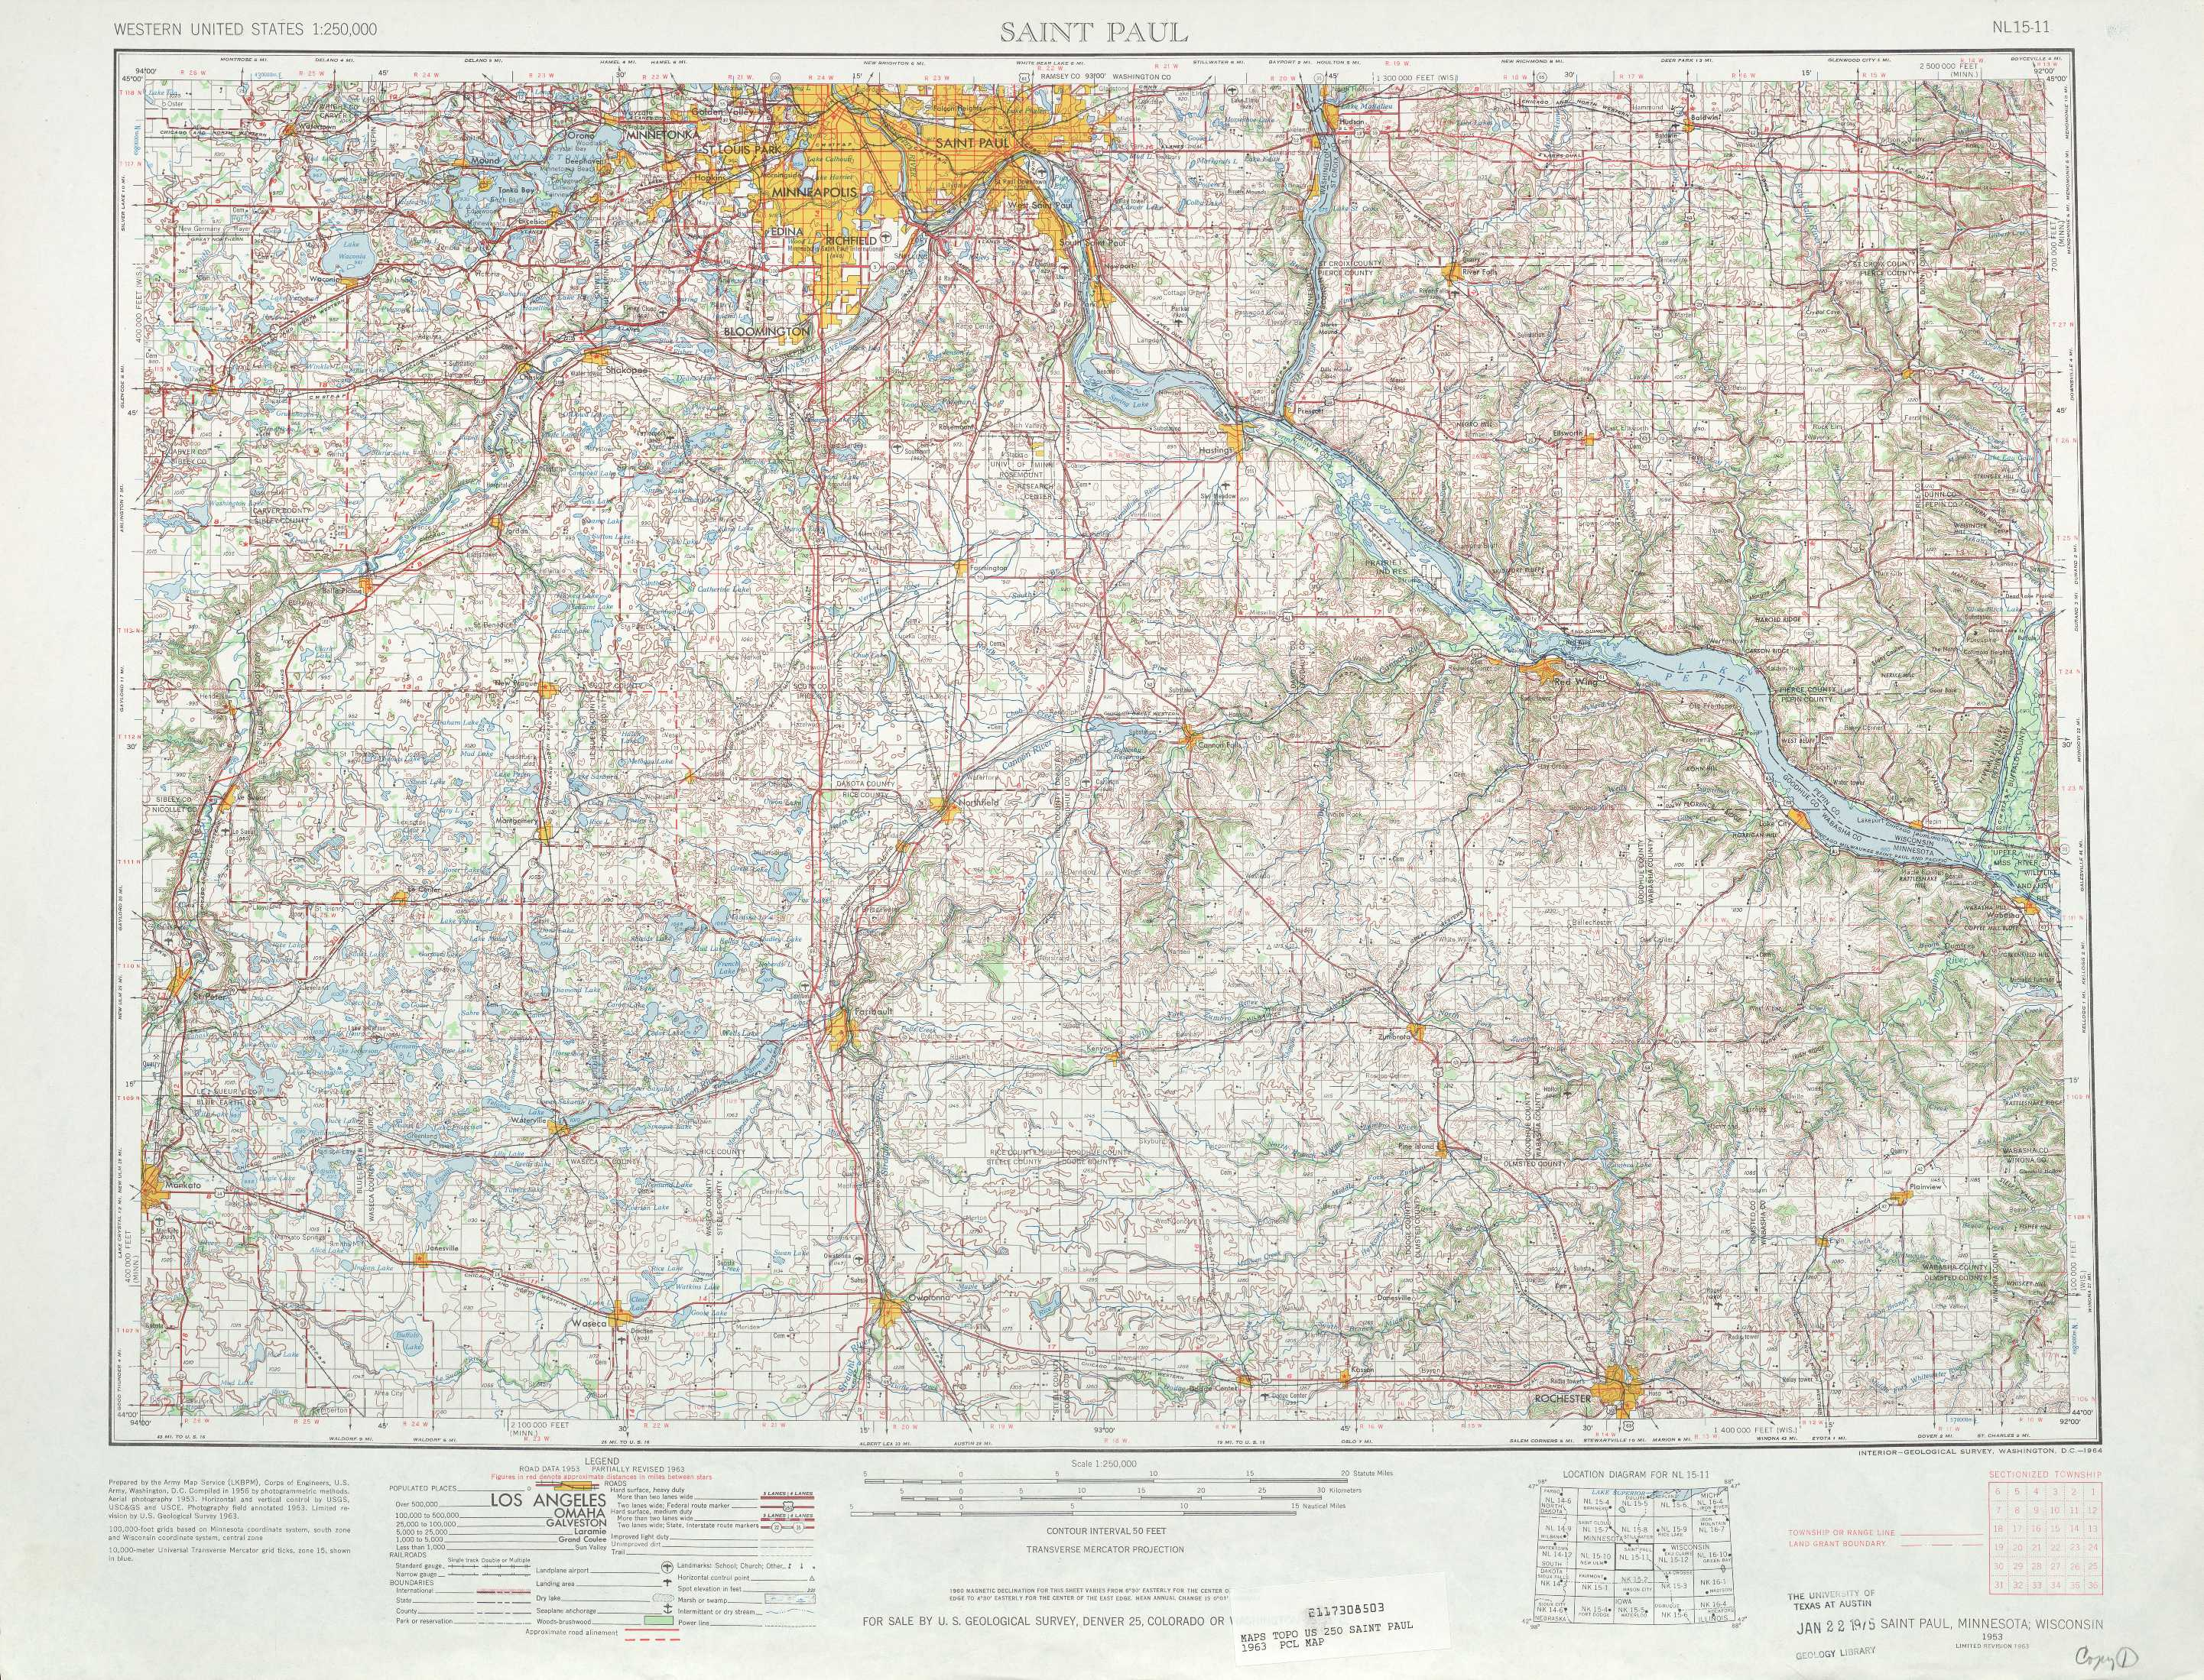 St Paul topographic maps MN WI USGS Topo Quad 44092a1 at 1 250 000 scale